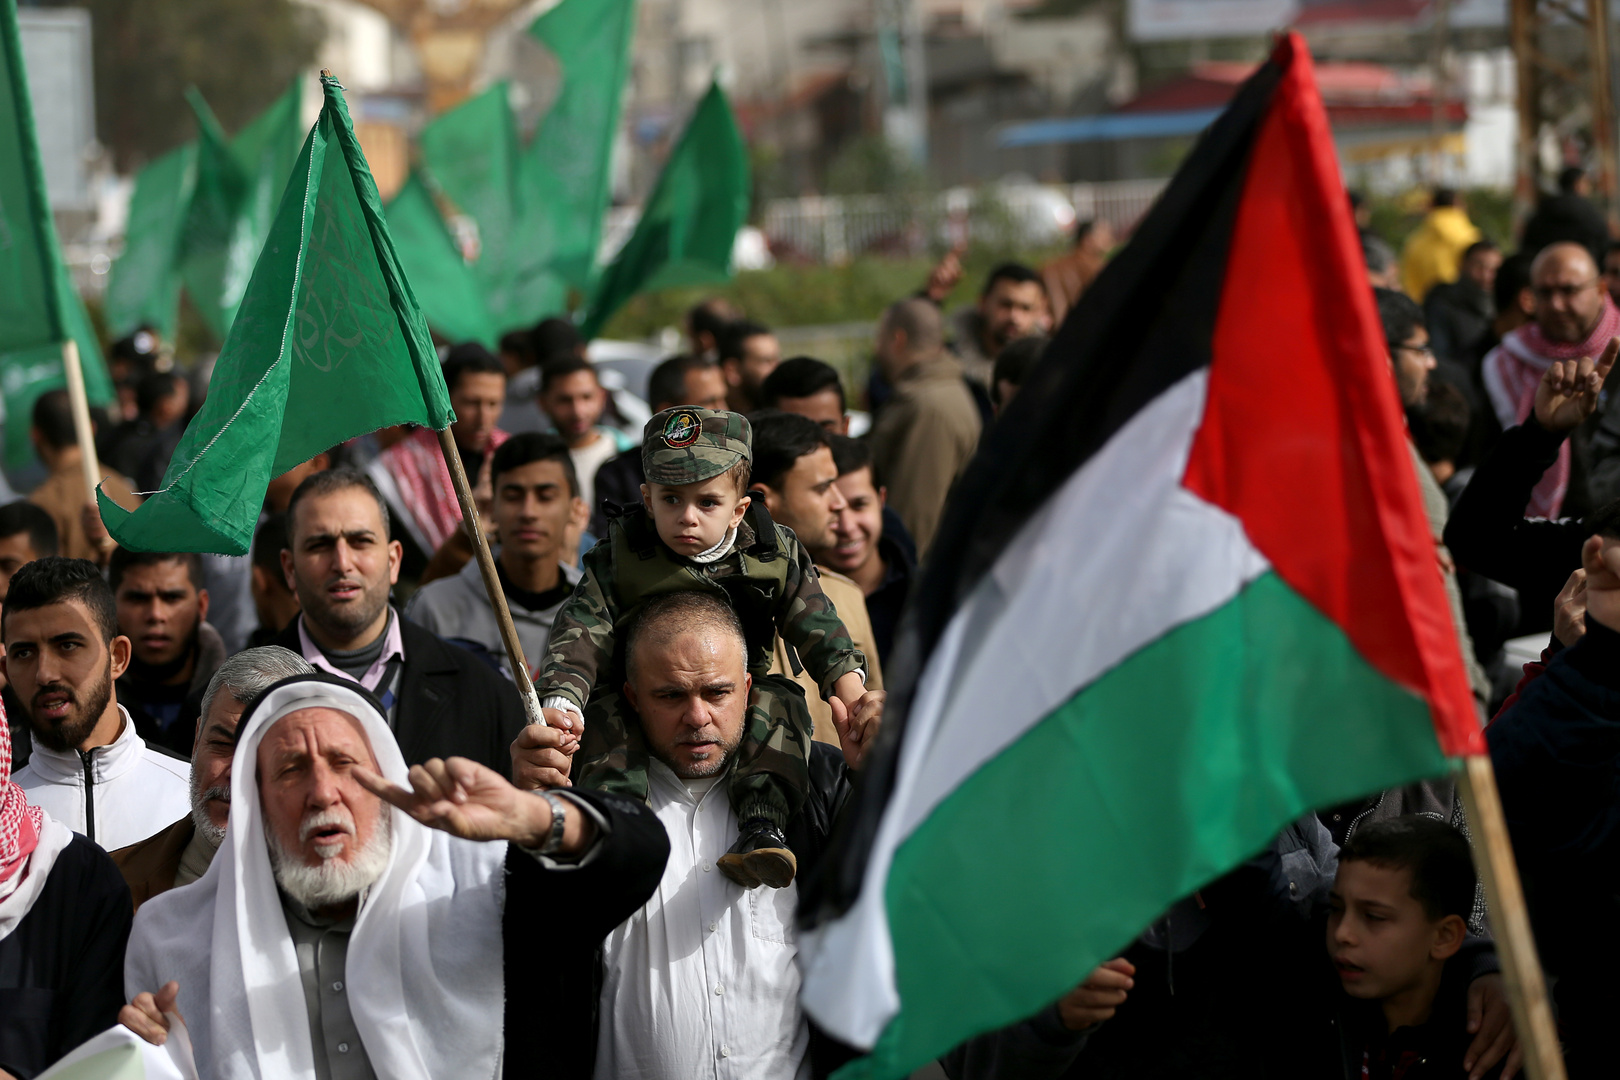 Palestinian Authority: US aid is a step in the right direction